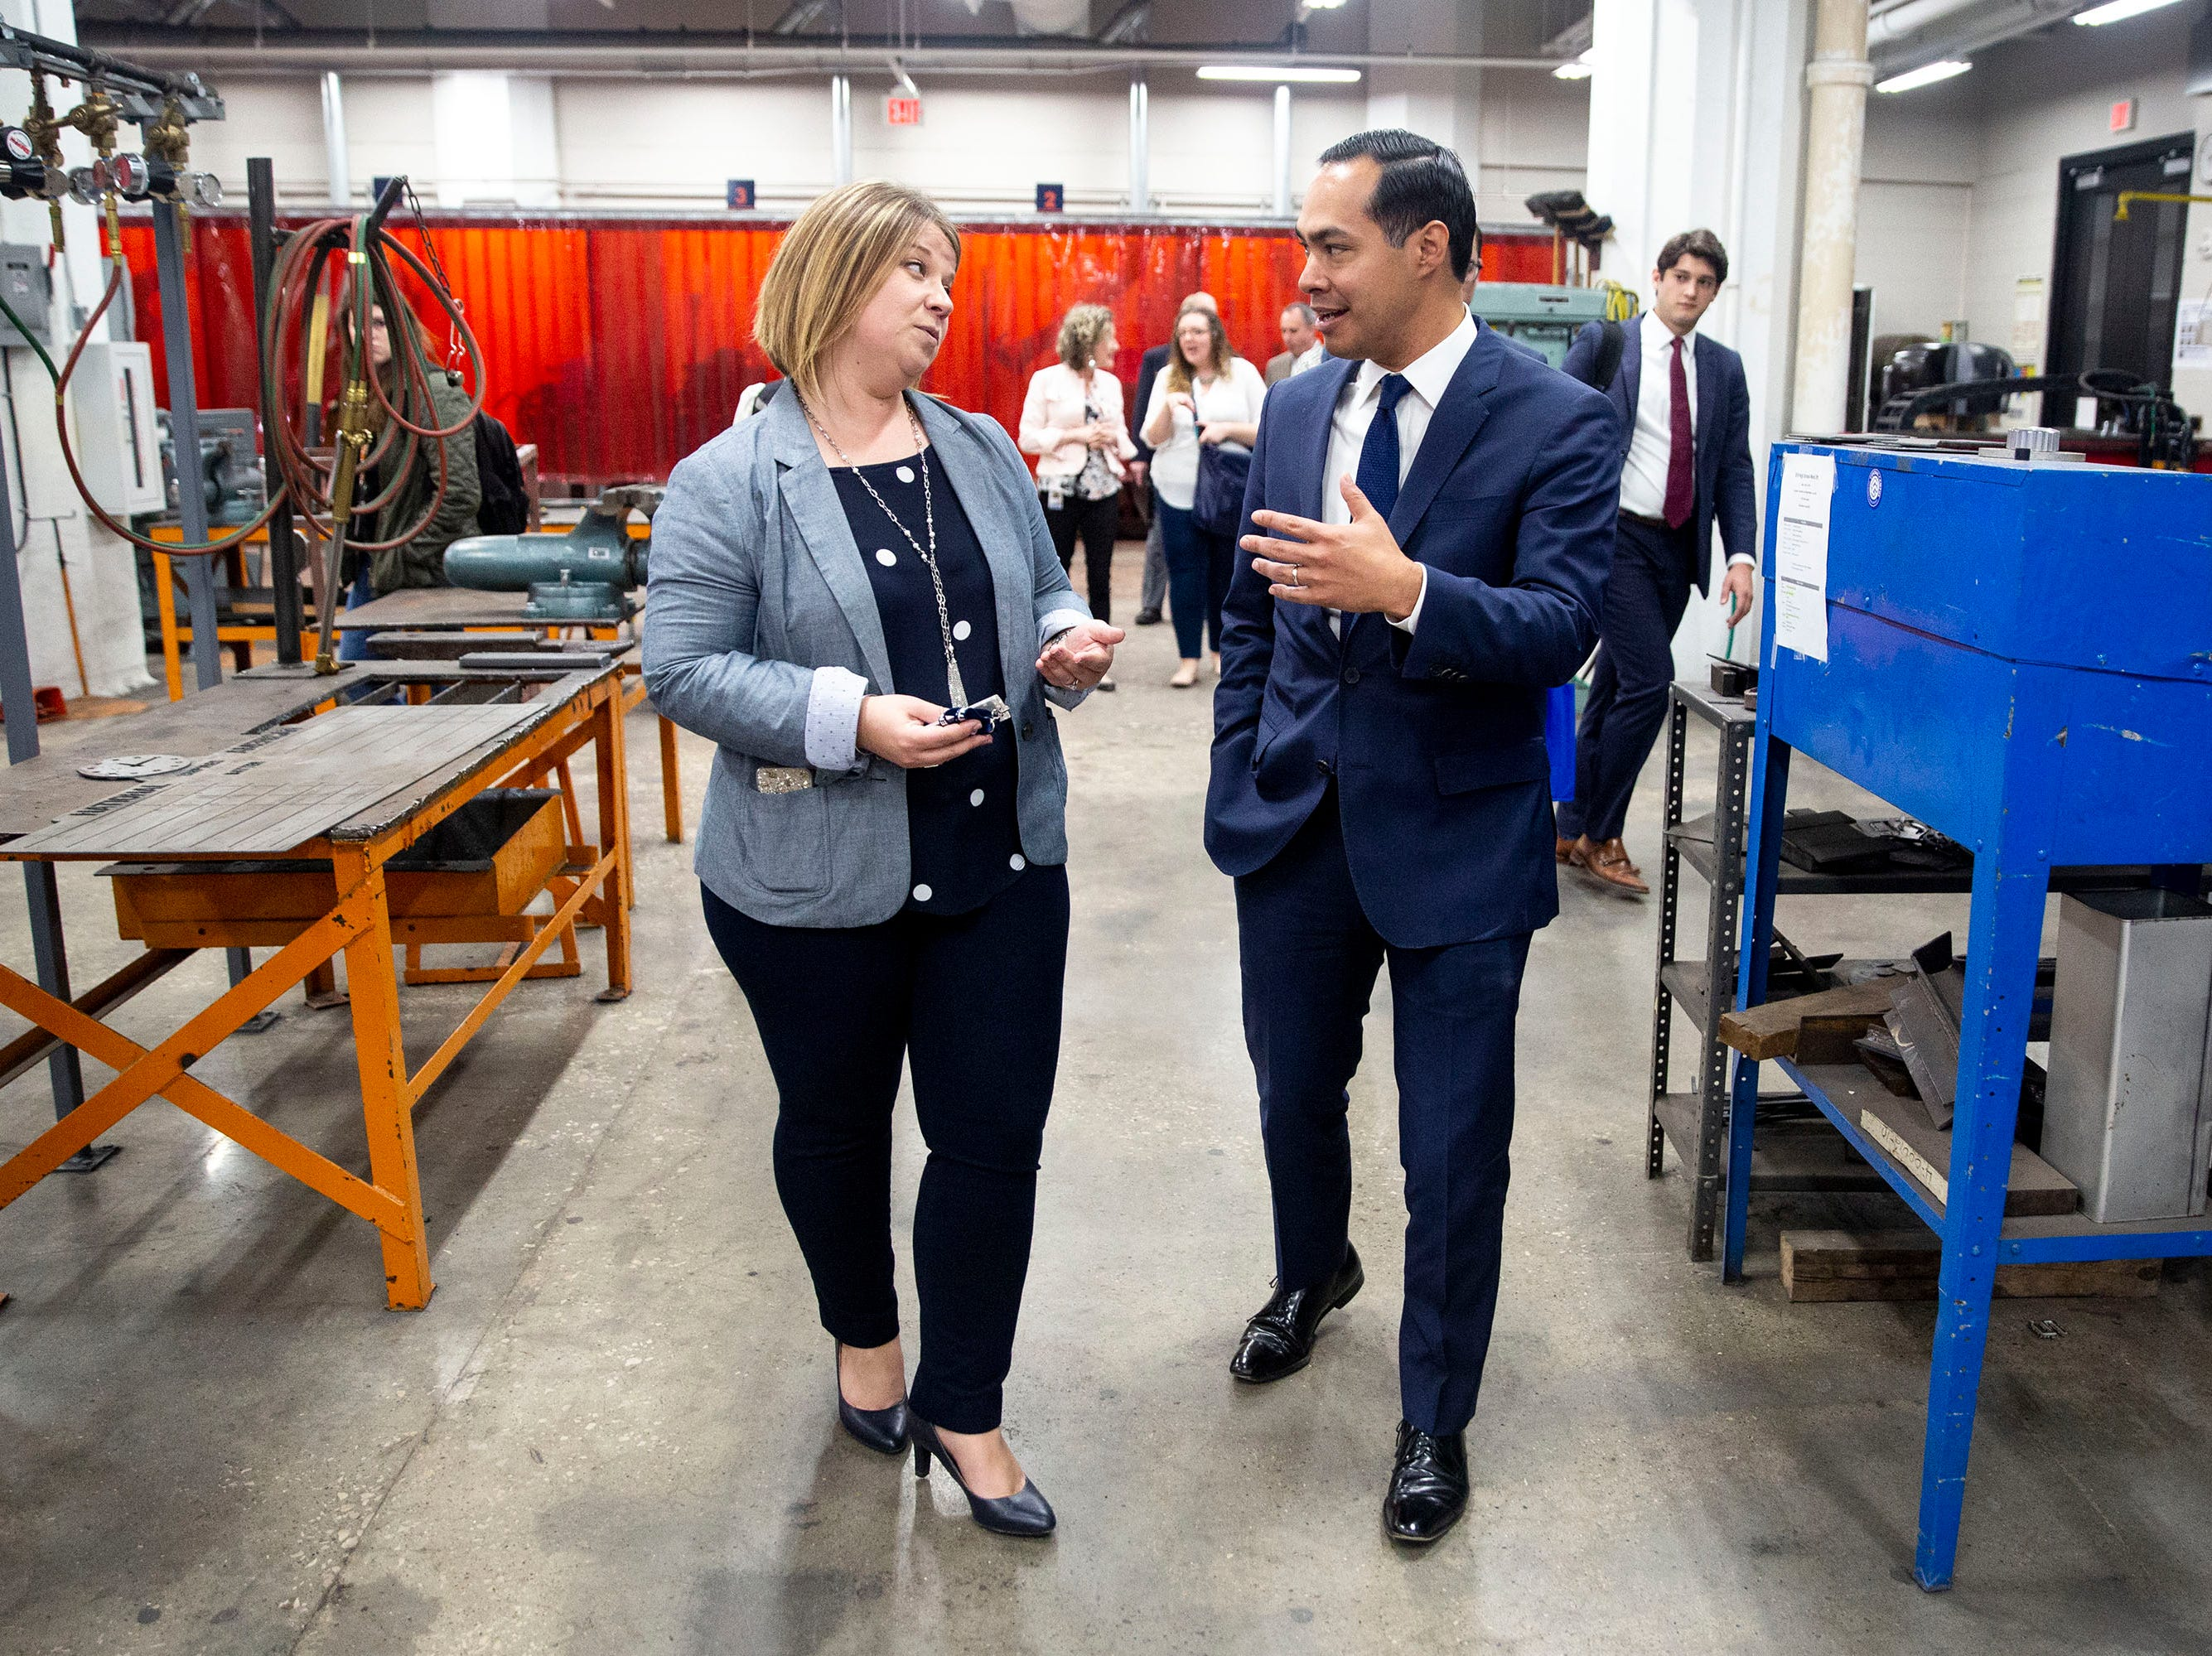 Tascha Brown, director of Des Moines Public Schools' Central Campus leads presidential hopeful Julián Castro through the welding lab of the school's skilled trades academy on Monday, April 15, 2019, in Des Moines.